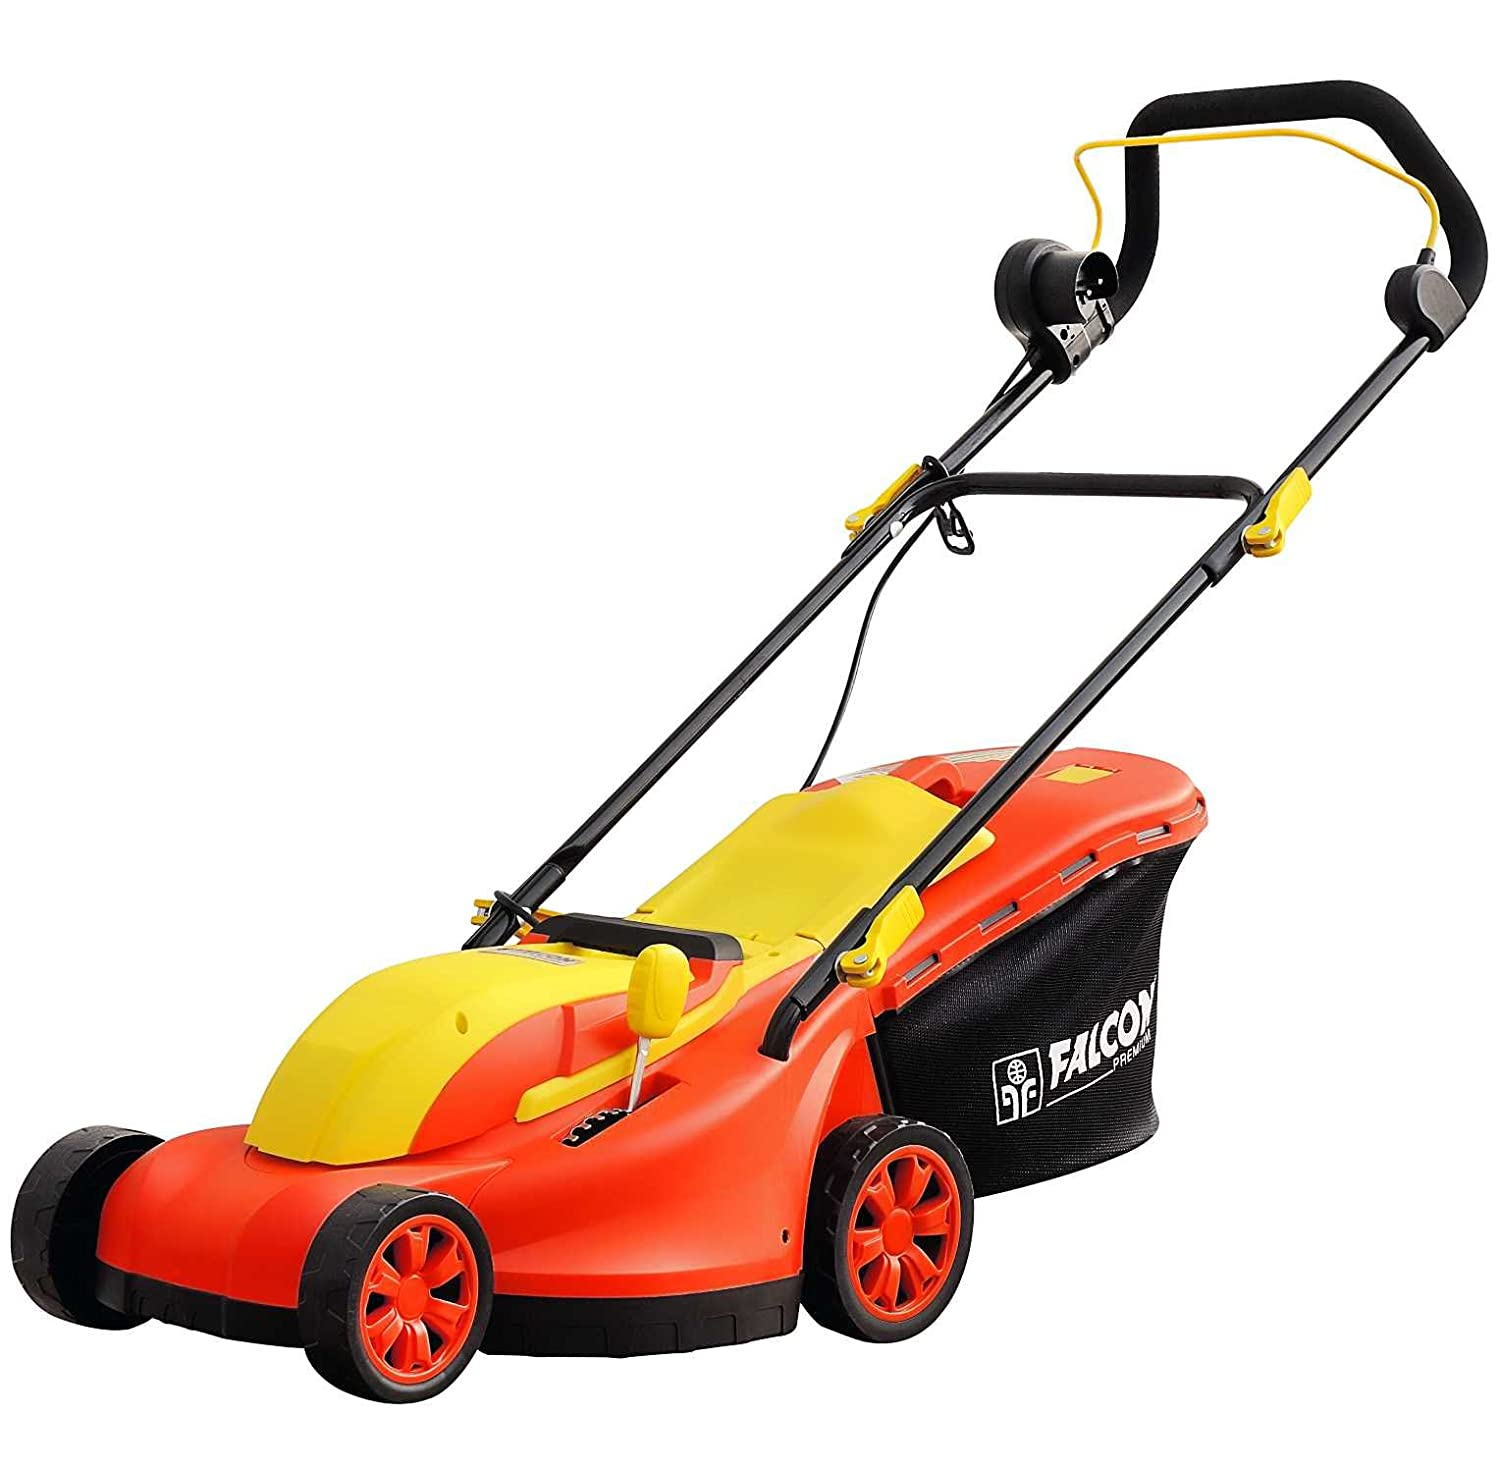 Mowers tractors online buy mowers tractors in india best falcon electric rotary lawn mower red fandeluxe Image collections